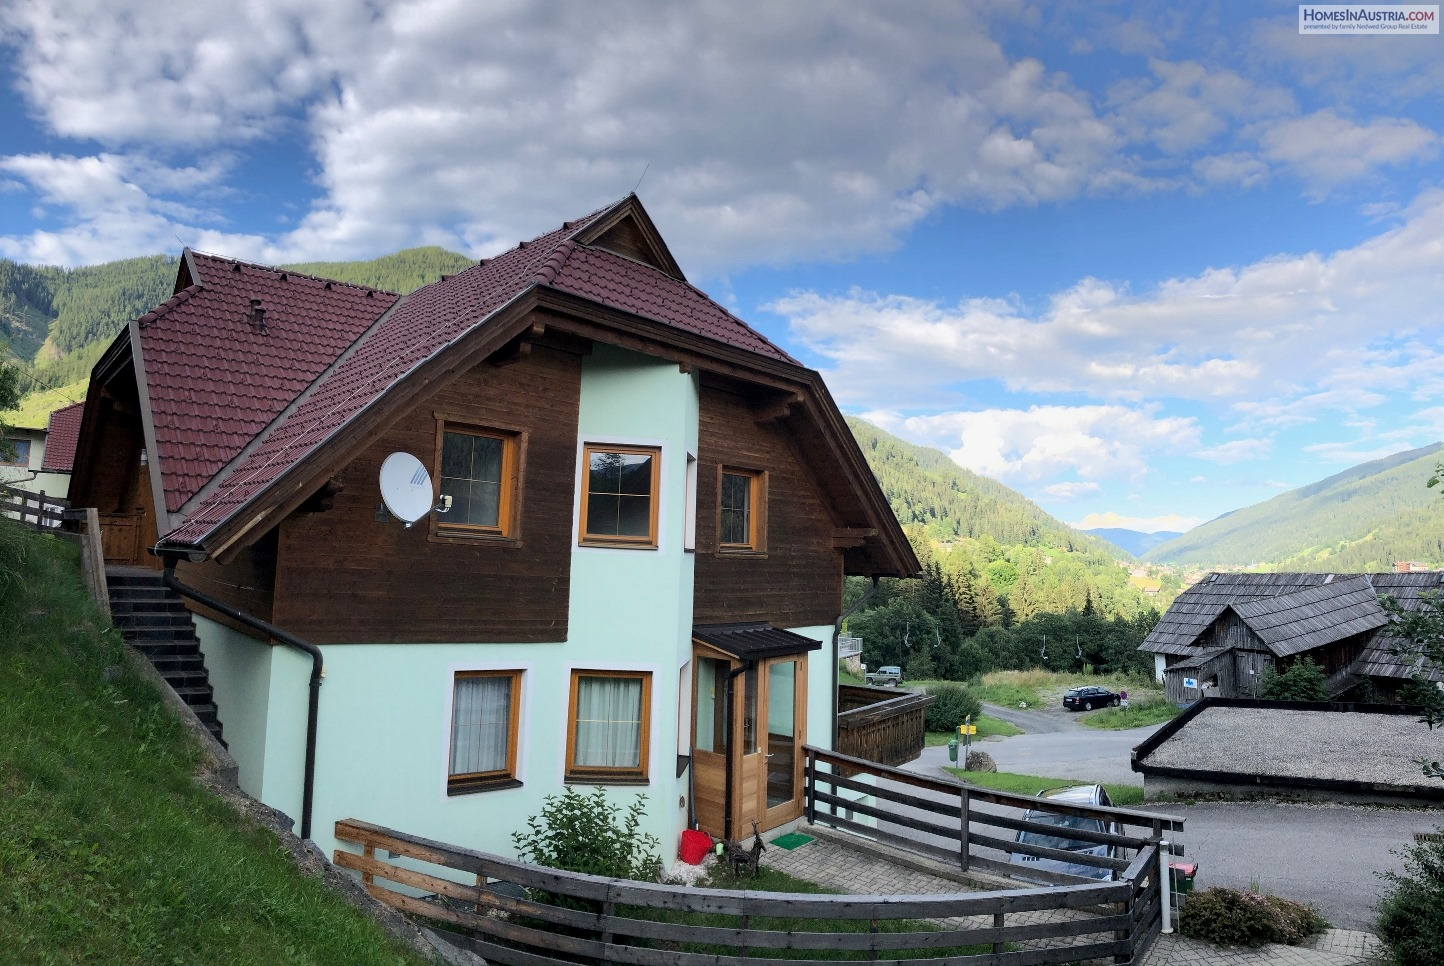 Bad Kleinkirchheim, Carinthia, Nice Apartment (BELLAVISTA), Sunny, near Ski slopes, 2 Bedroom, Balcony, Garage